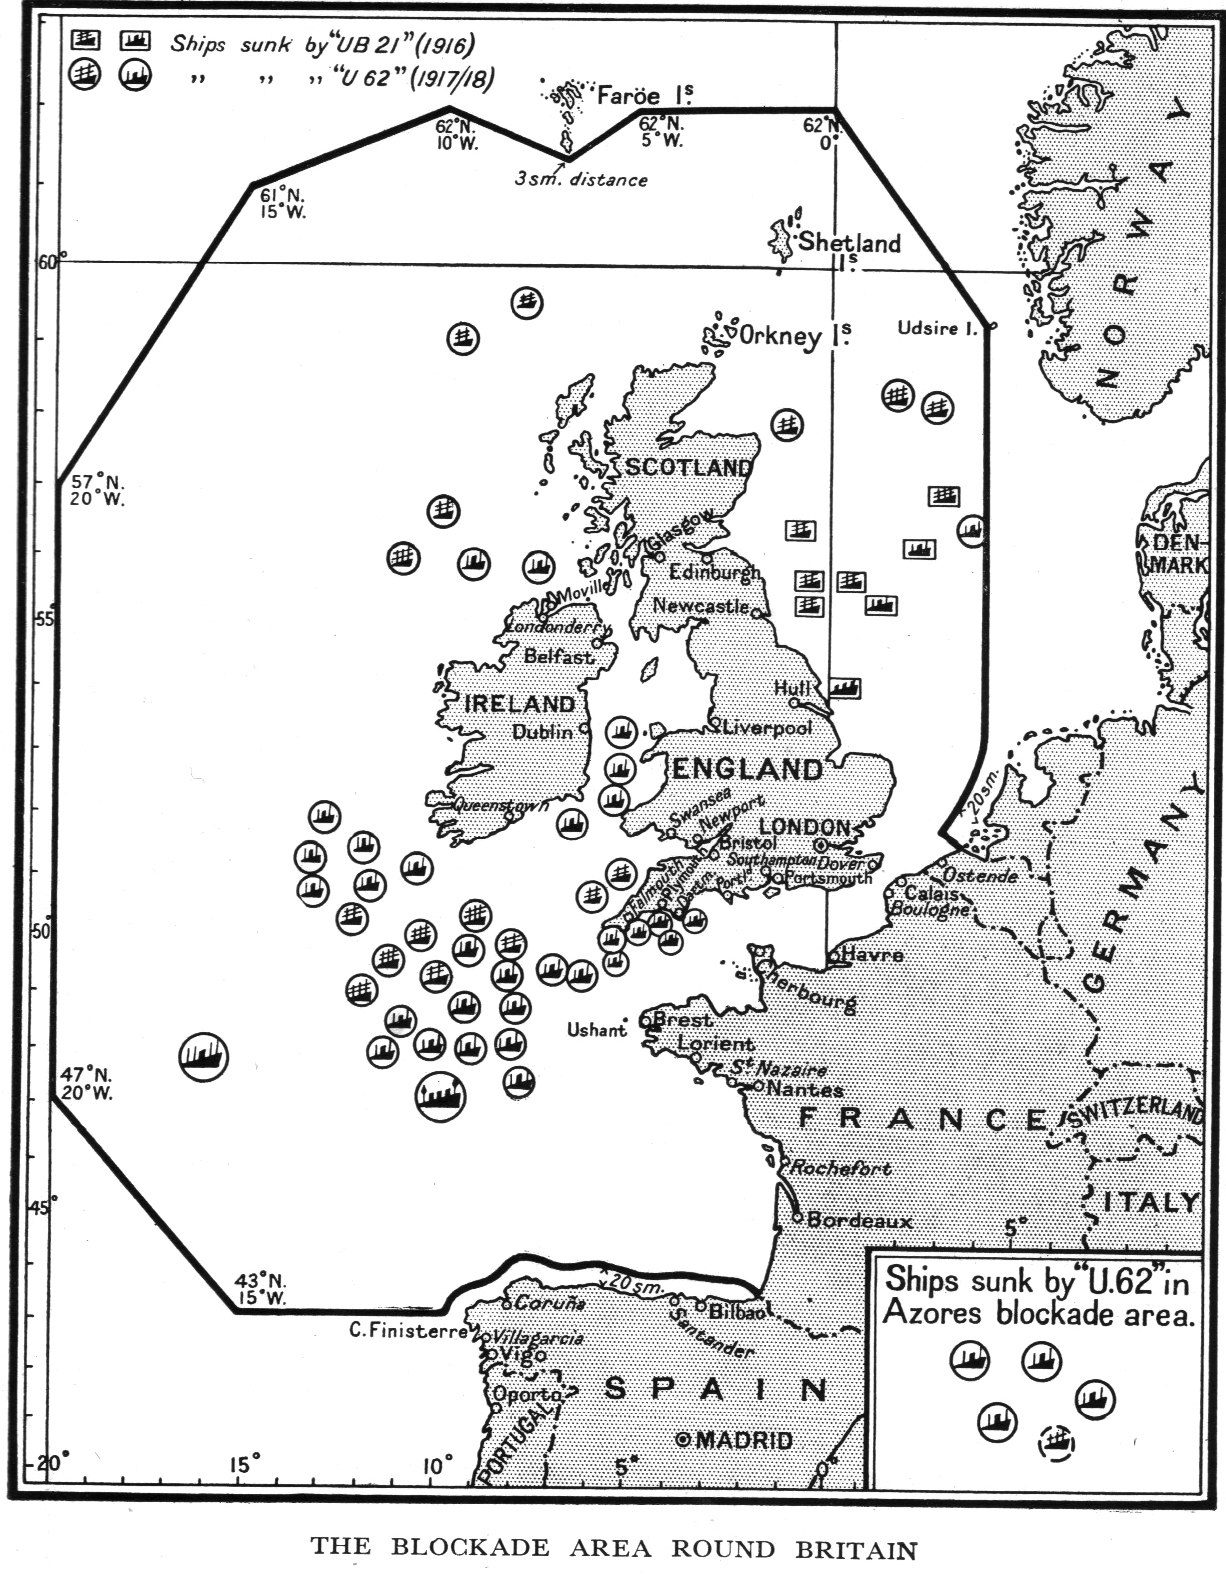 hight resolution of u62 and u21 sink ships in the blockaded areas and approaches